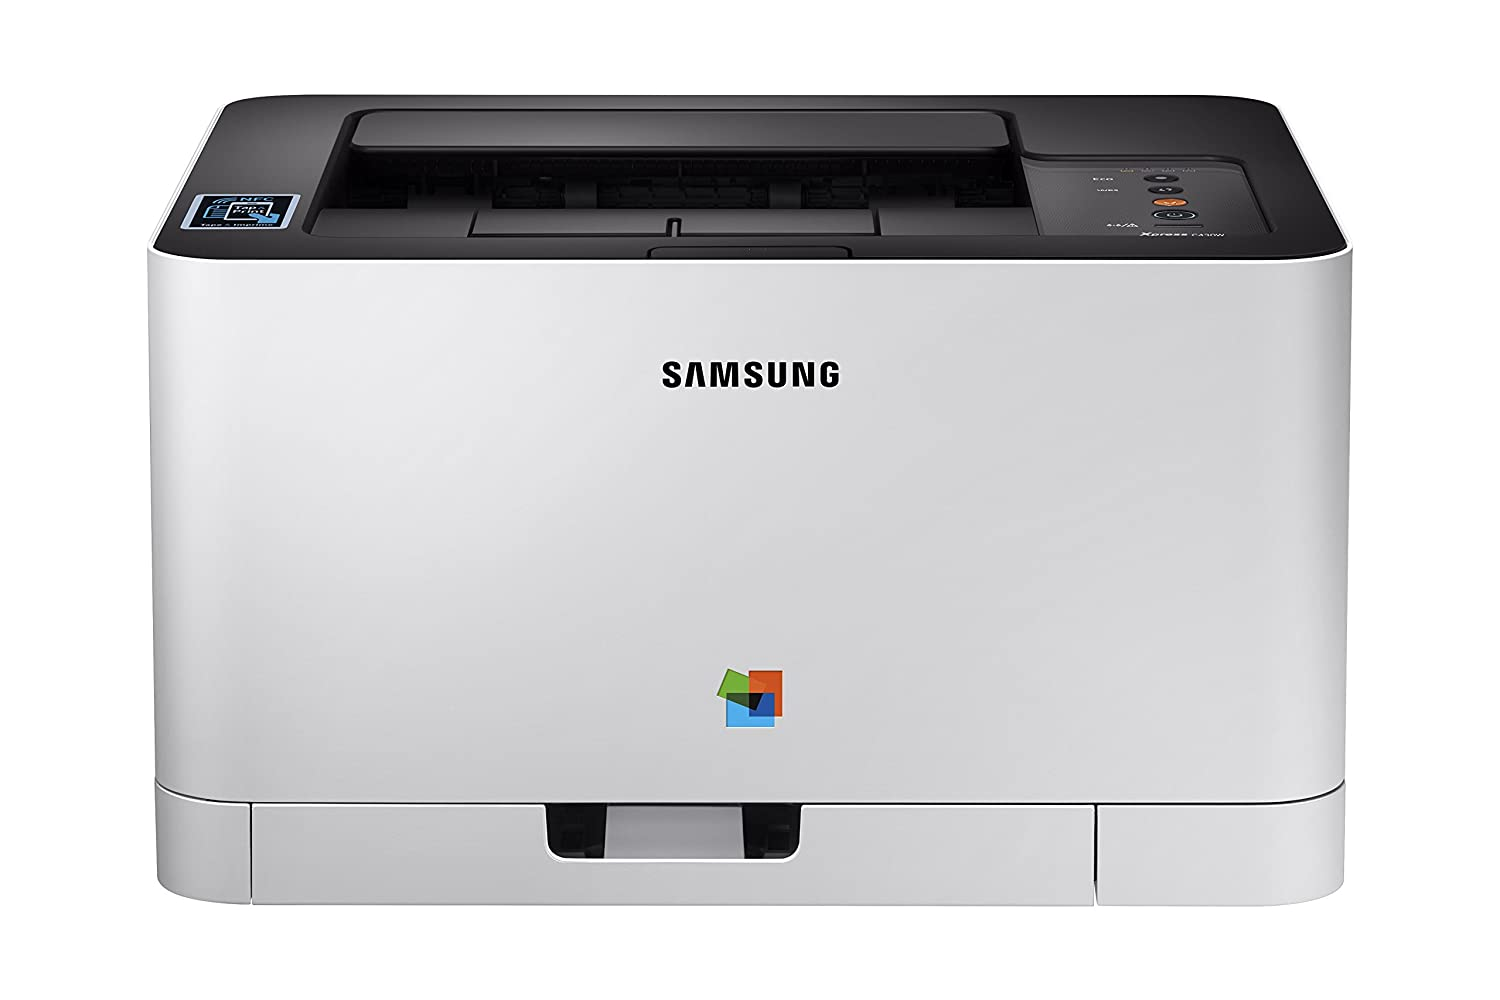 Color printers laser - Small Color Laser Printers This Printer Has An Eco Button To Save Toner And Power